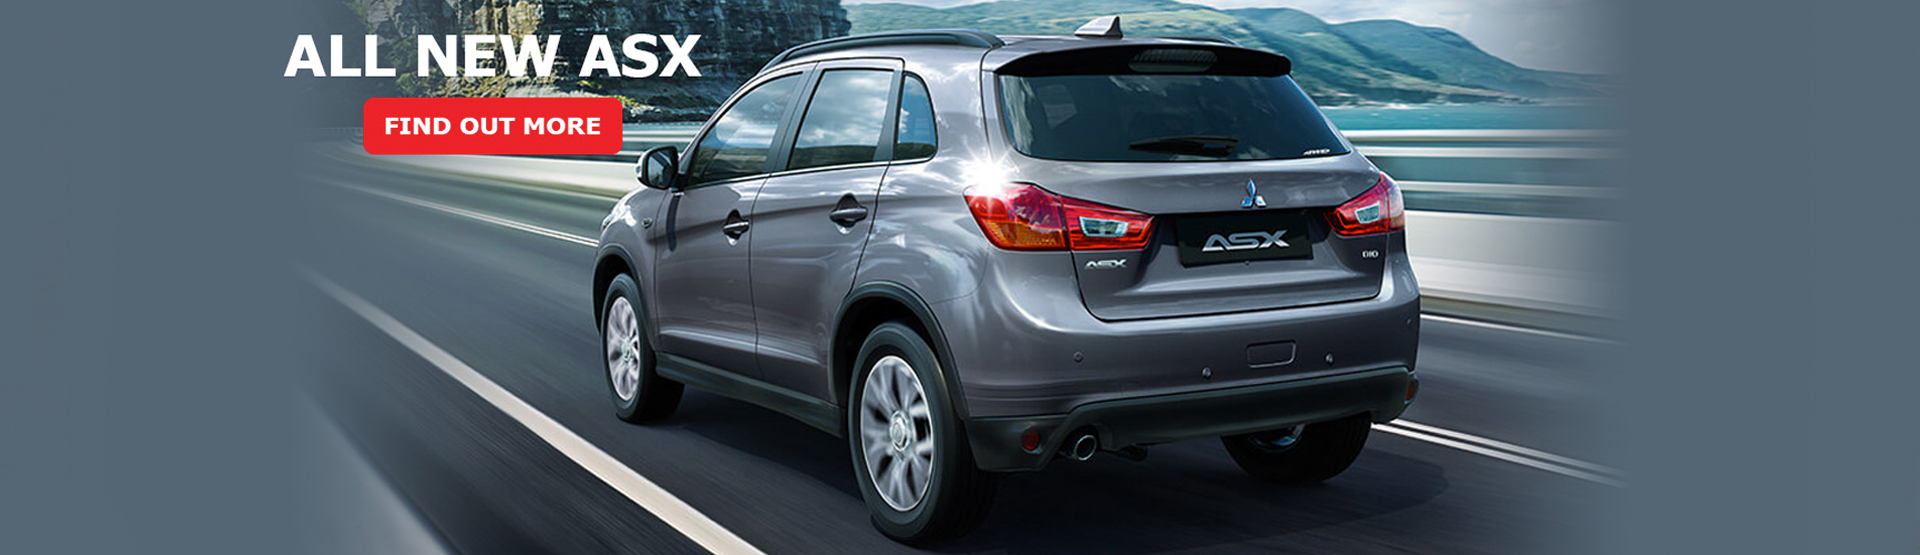 The all-new Mitsubishi ASX SUV is now available at Redcliffe Mitsubishi Brisbane.